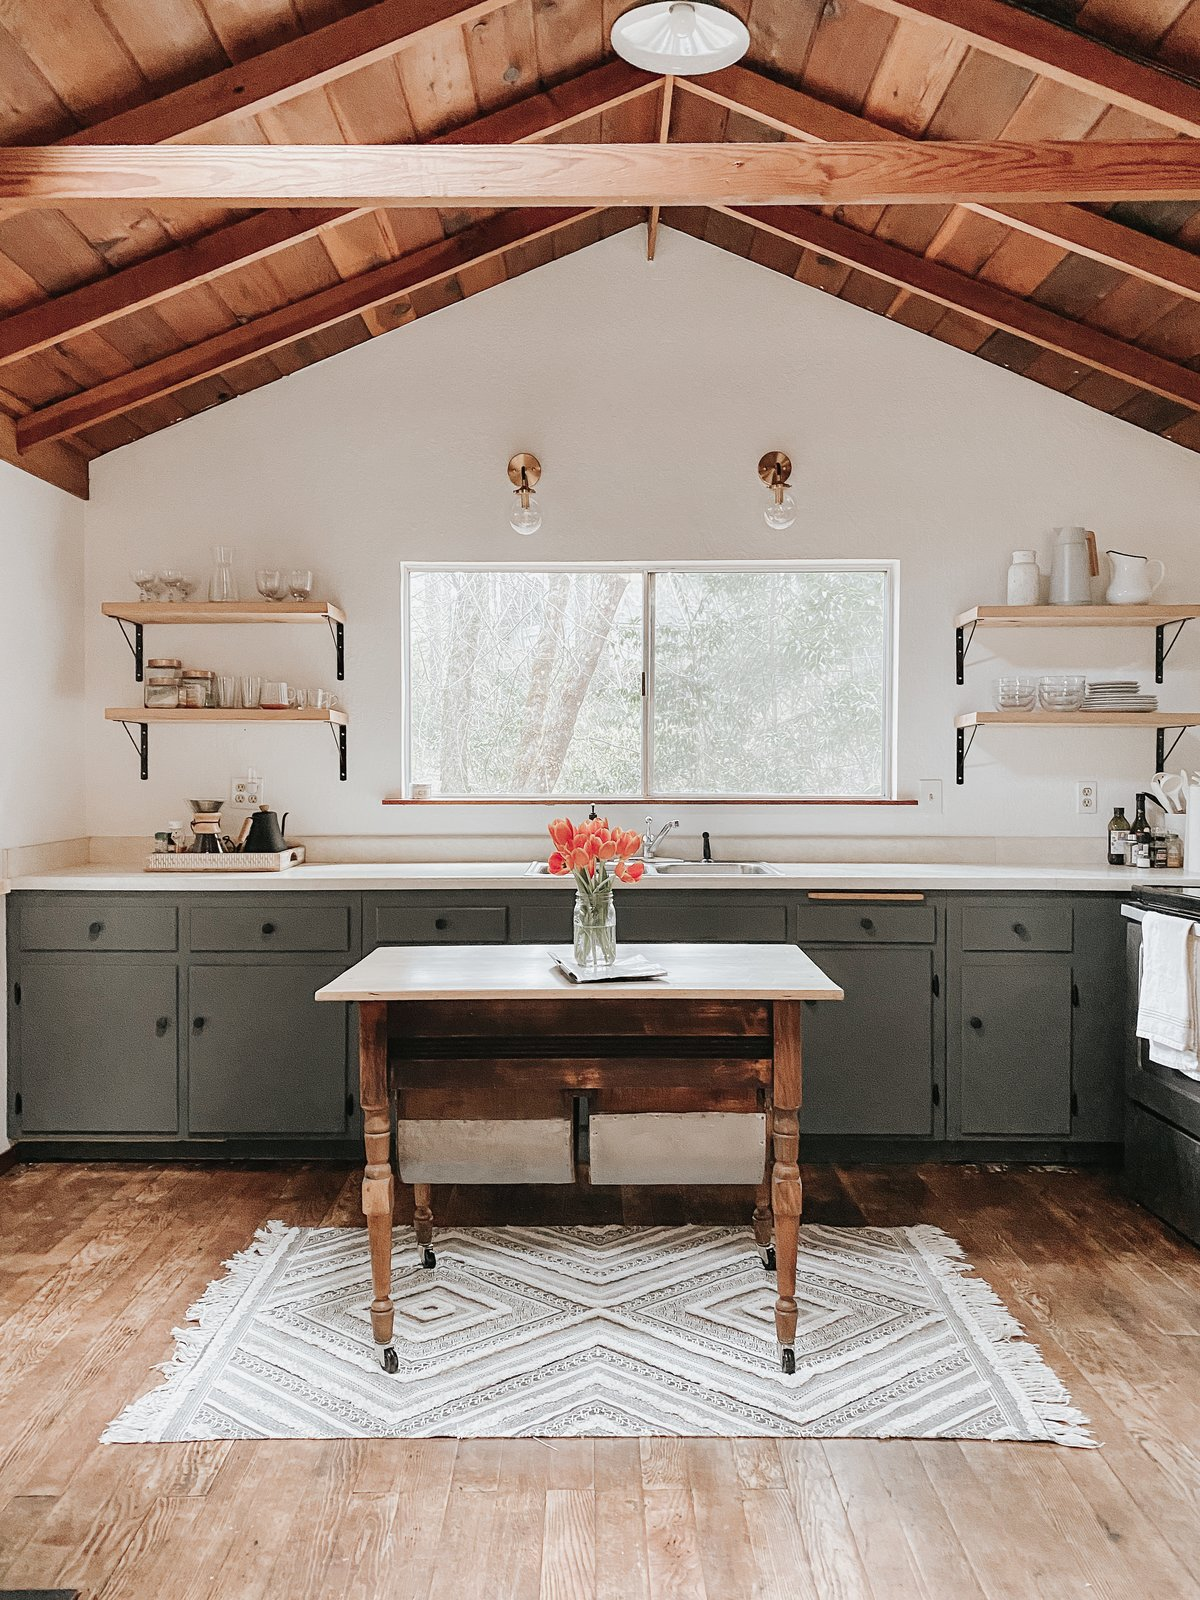 Photo 1 Of 4975 In Kitchen Photos From Before After A Dreary Woodland Cabin Gets A Sparkling Update For 20k Dwell